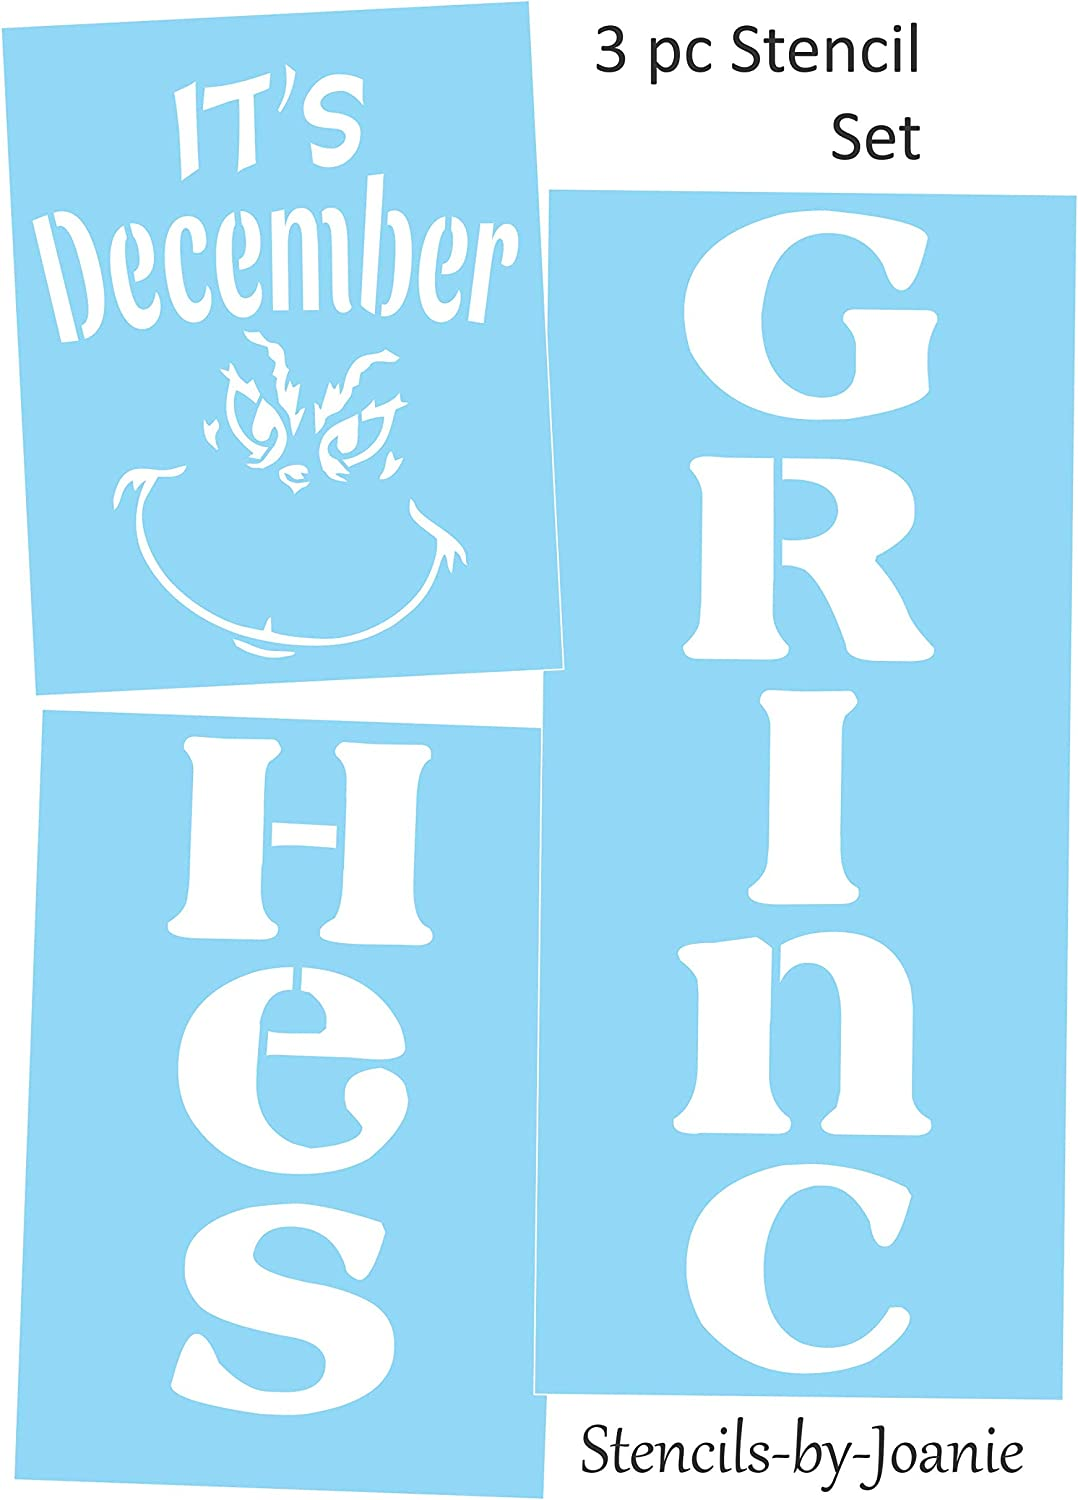 Joanie Its December Grinches 10x50 Stencil Vertical Holiday DIY Porch Home Decor